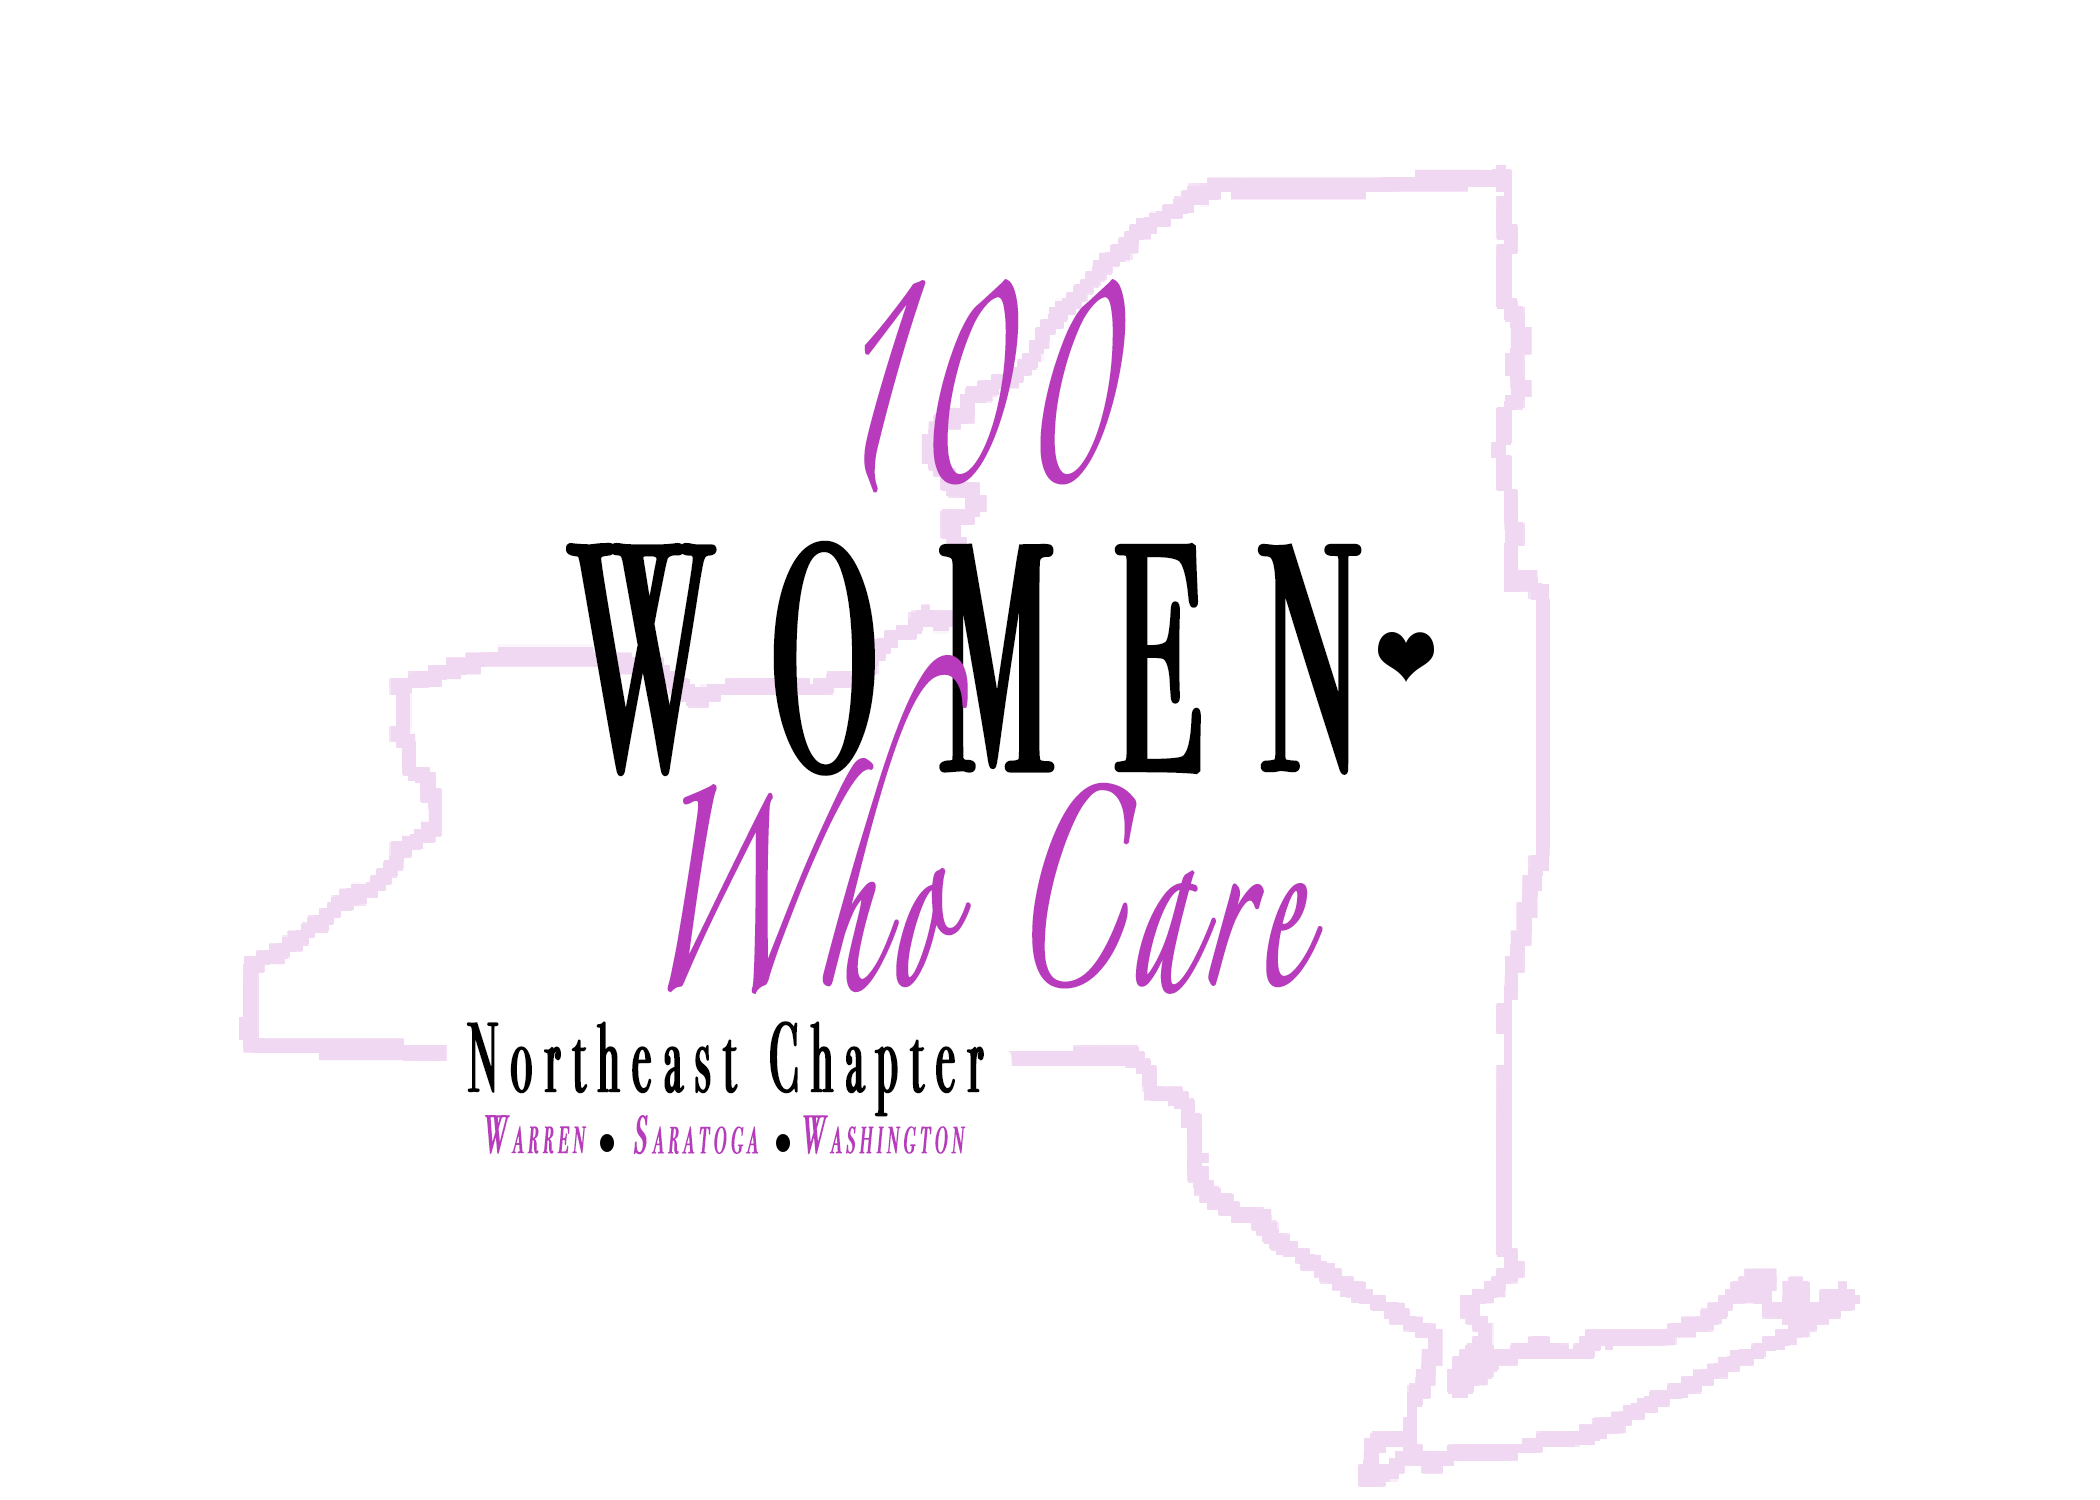 100 Women Who Care of the Northeast